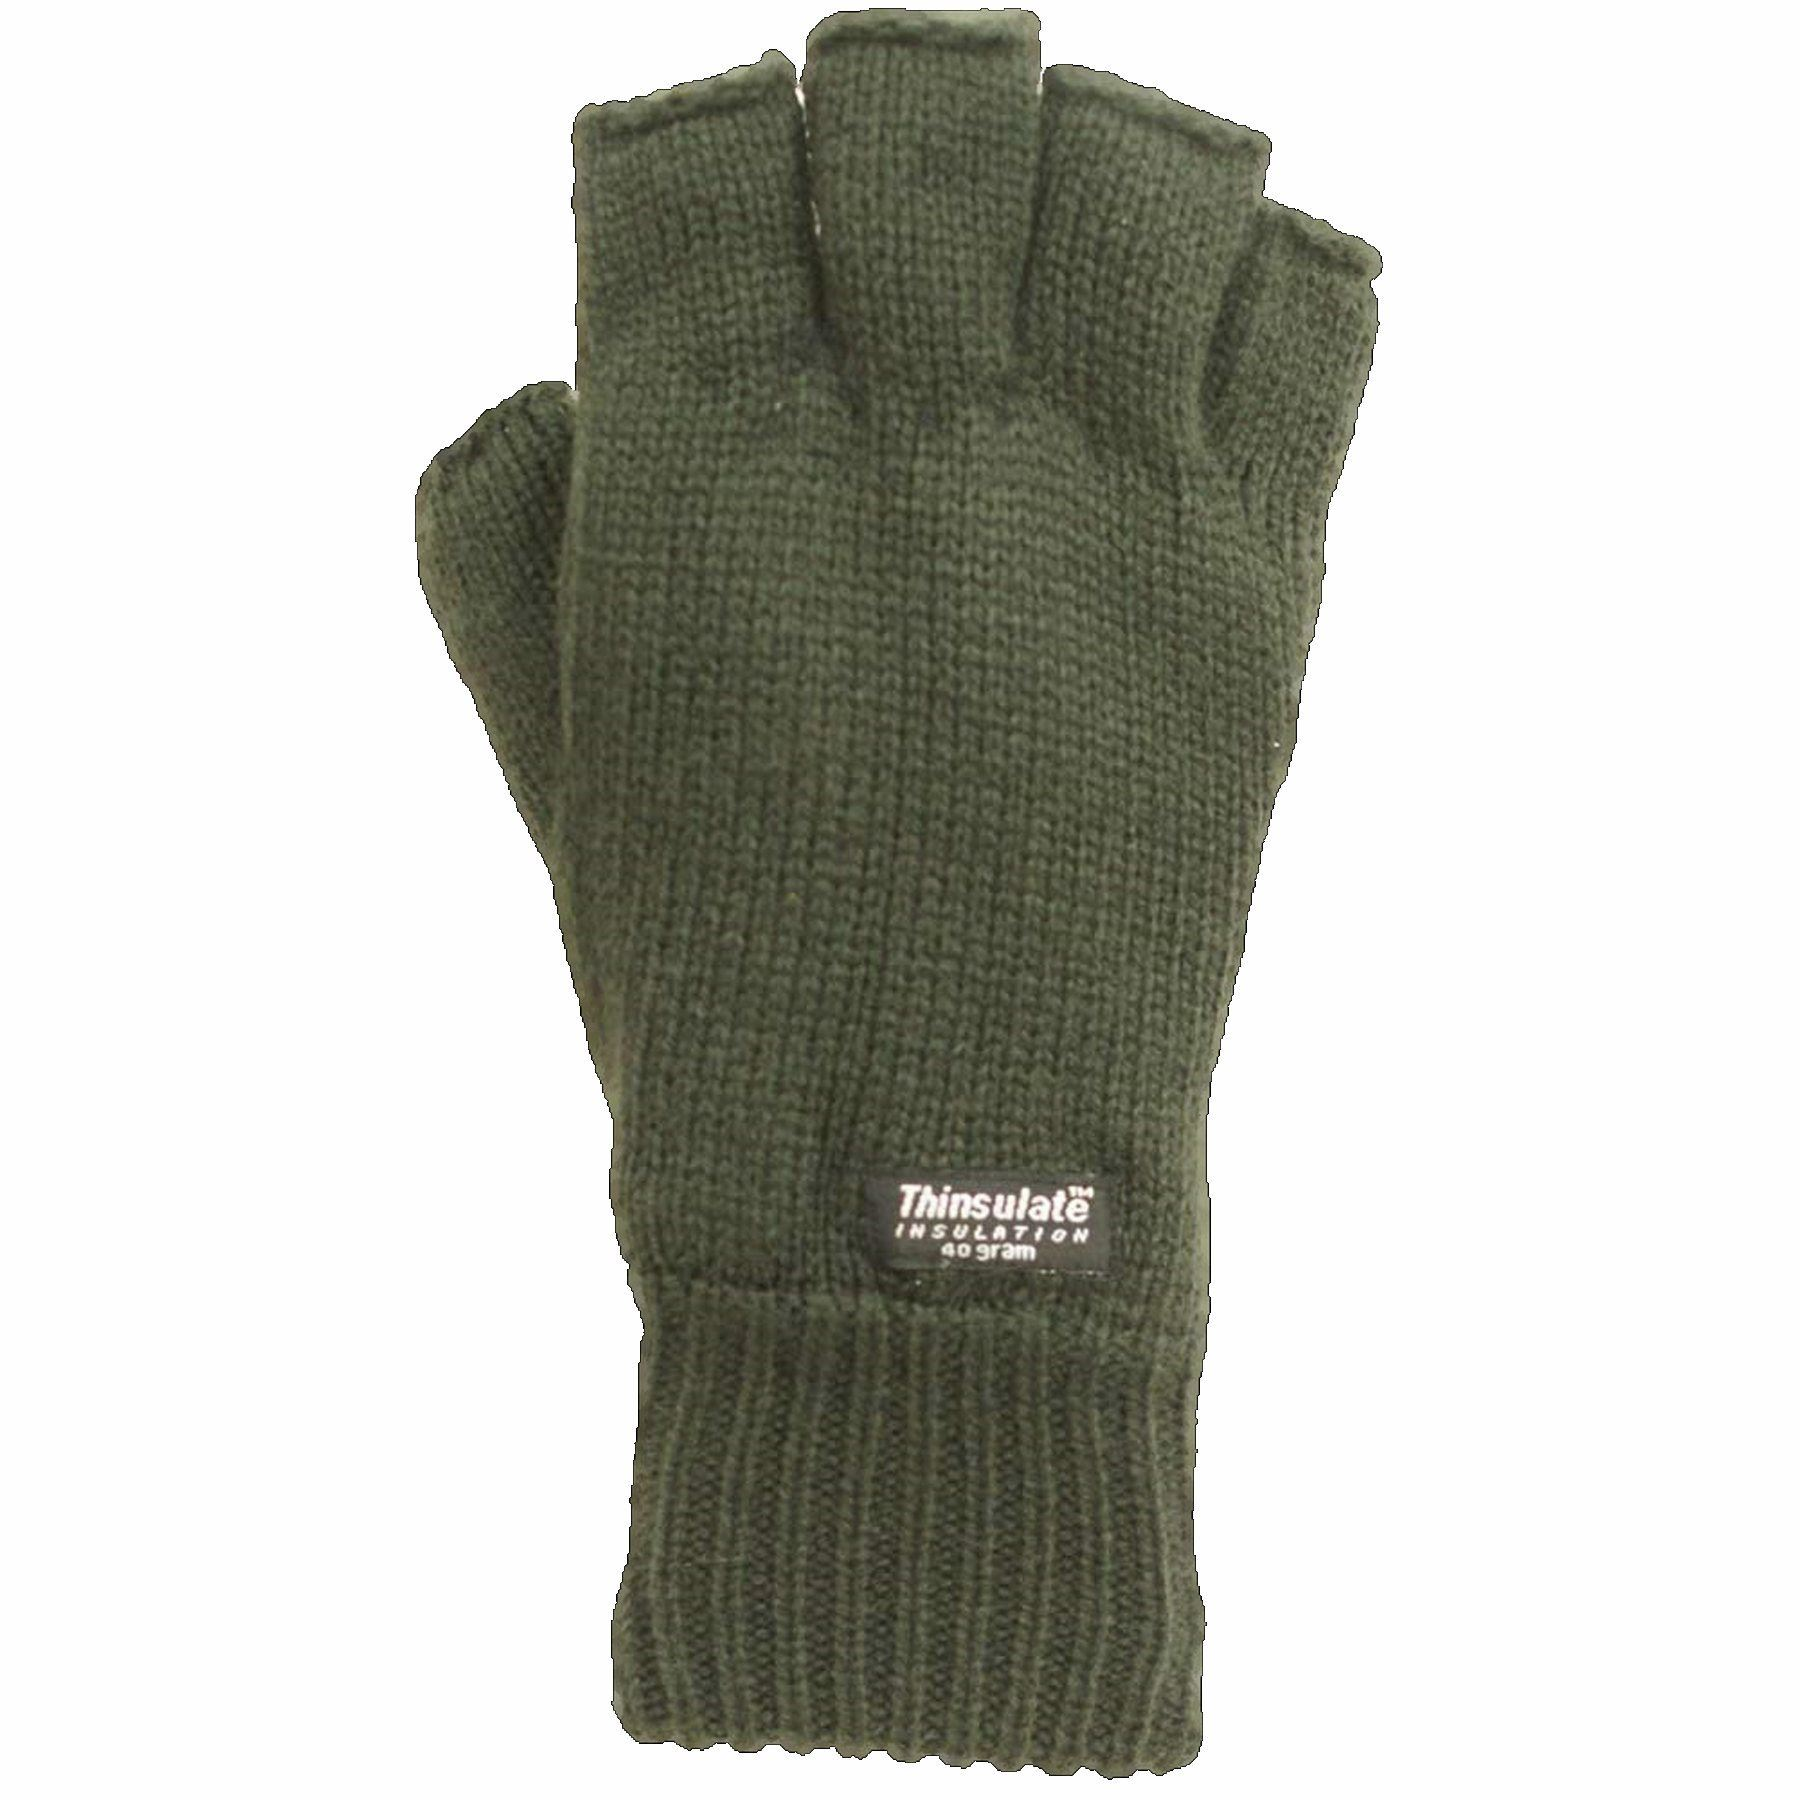 mens-fingerless-gloves-thinsulate-green-olive-black-camo-fishing-fleece-lined